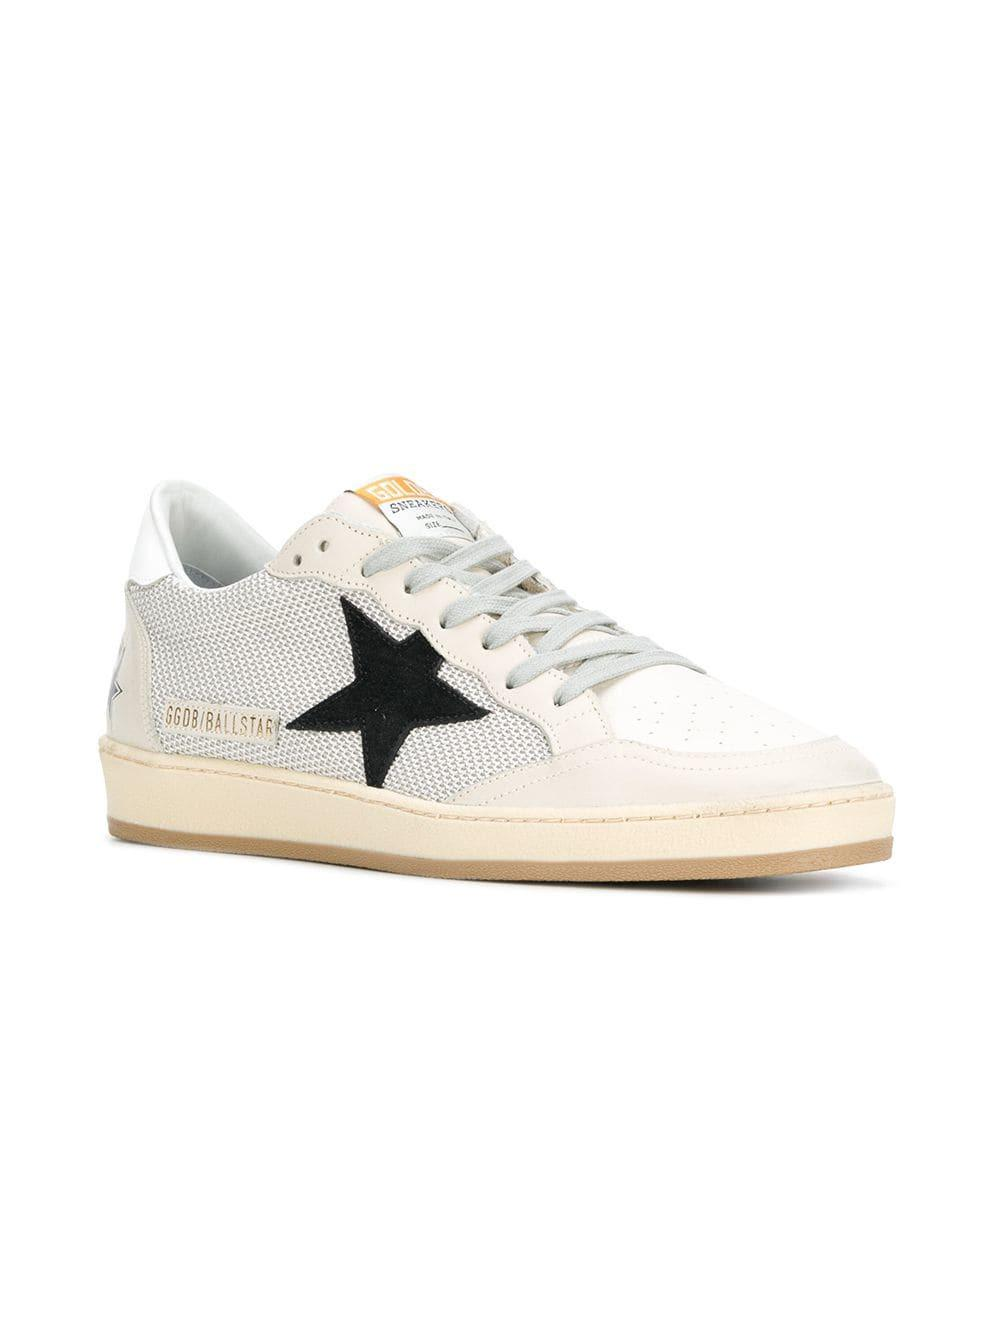 2f2b09adcfcfa Golden Goose Deluxe Brand Ball Star Sneakers for Men - Lyst